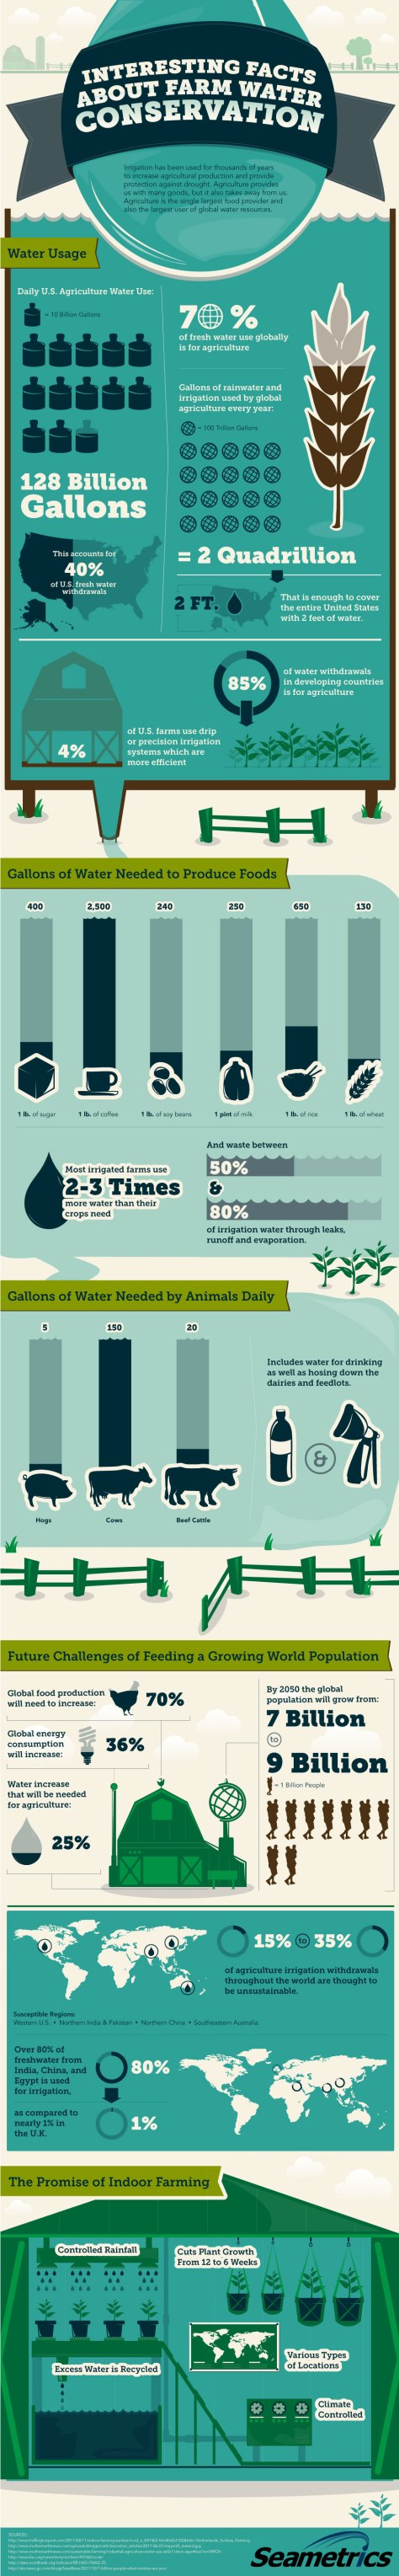 Surprising facts about global agricultural water use